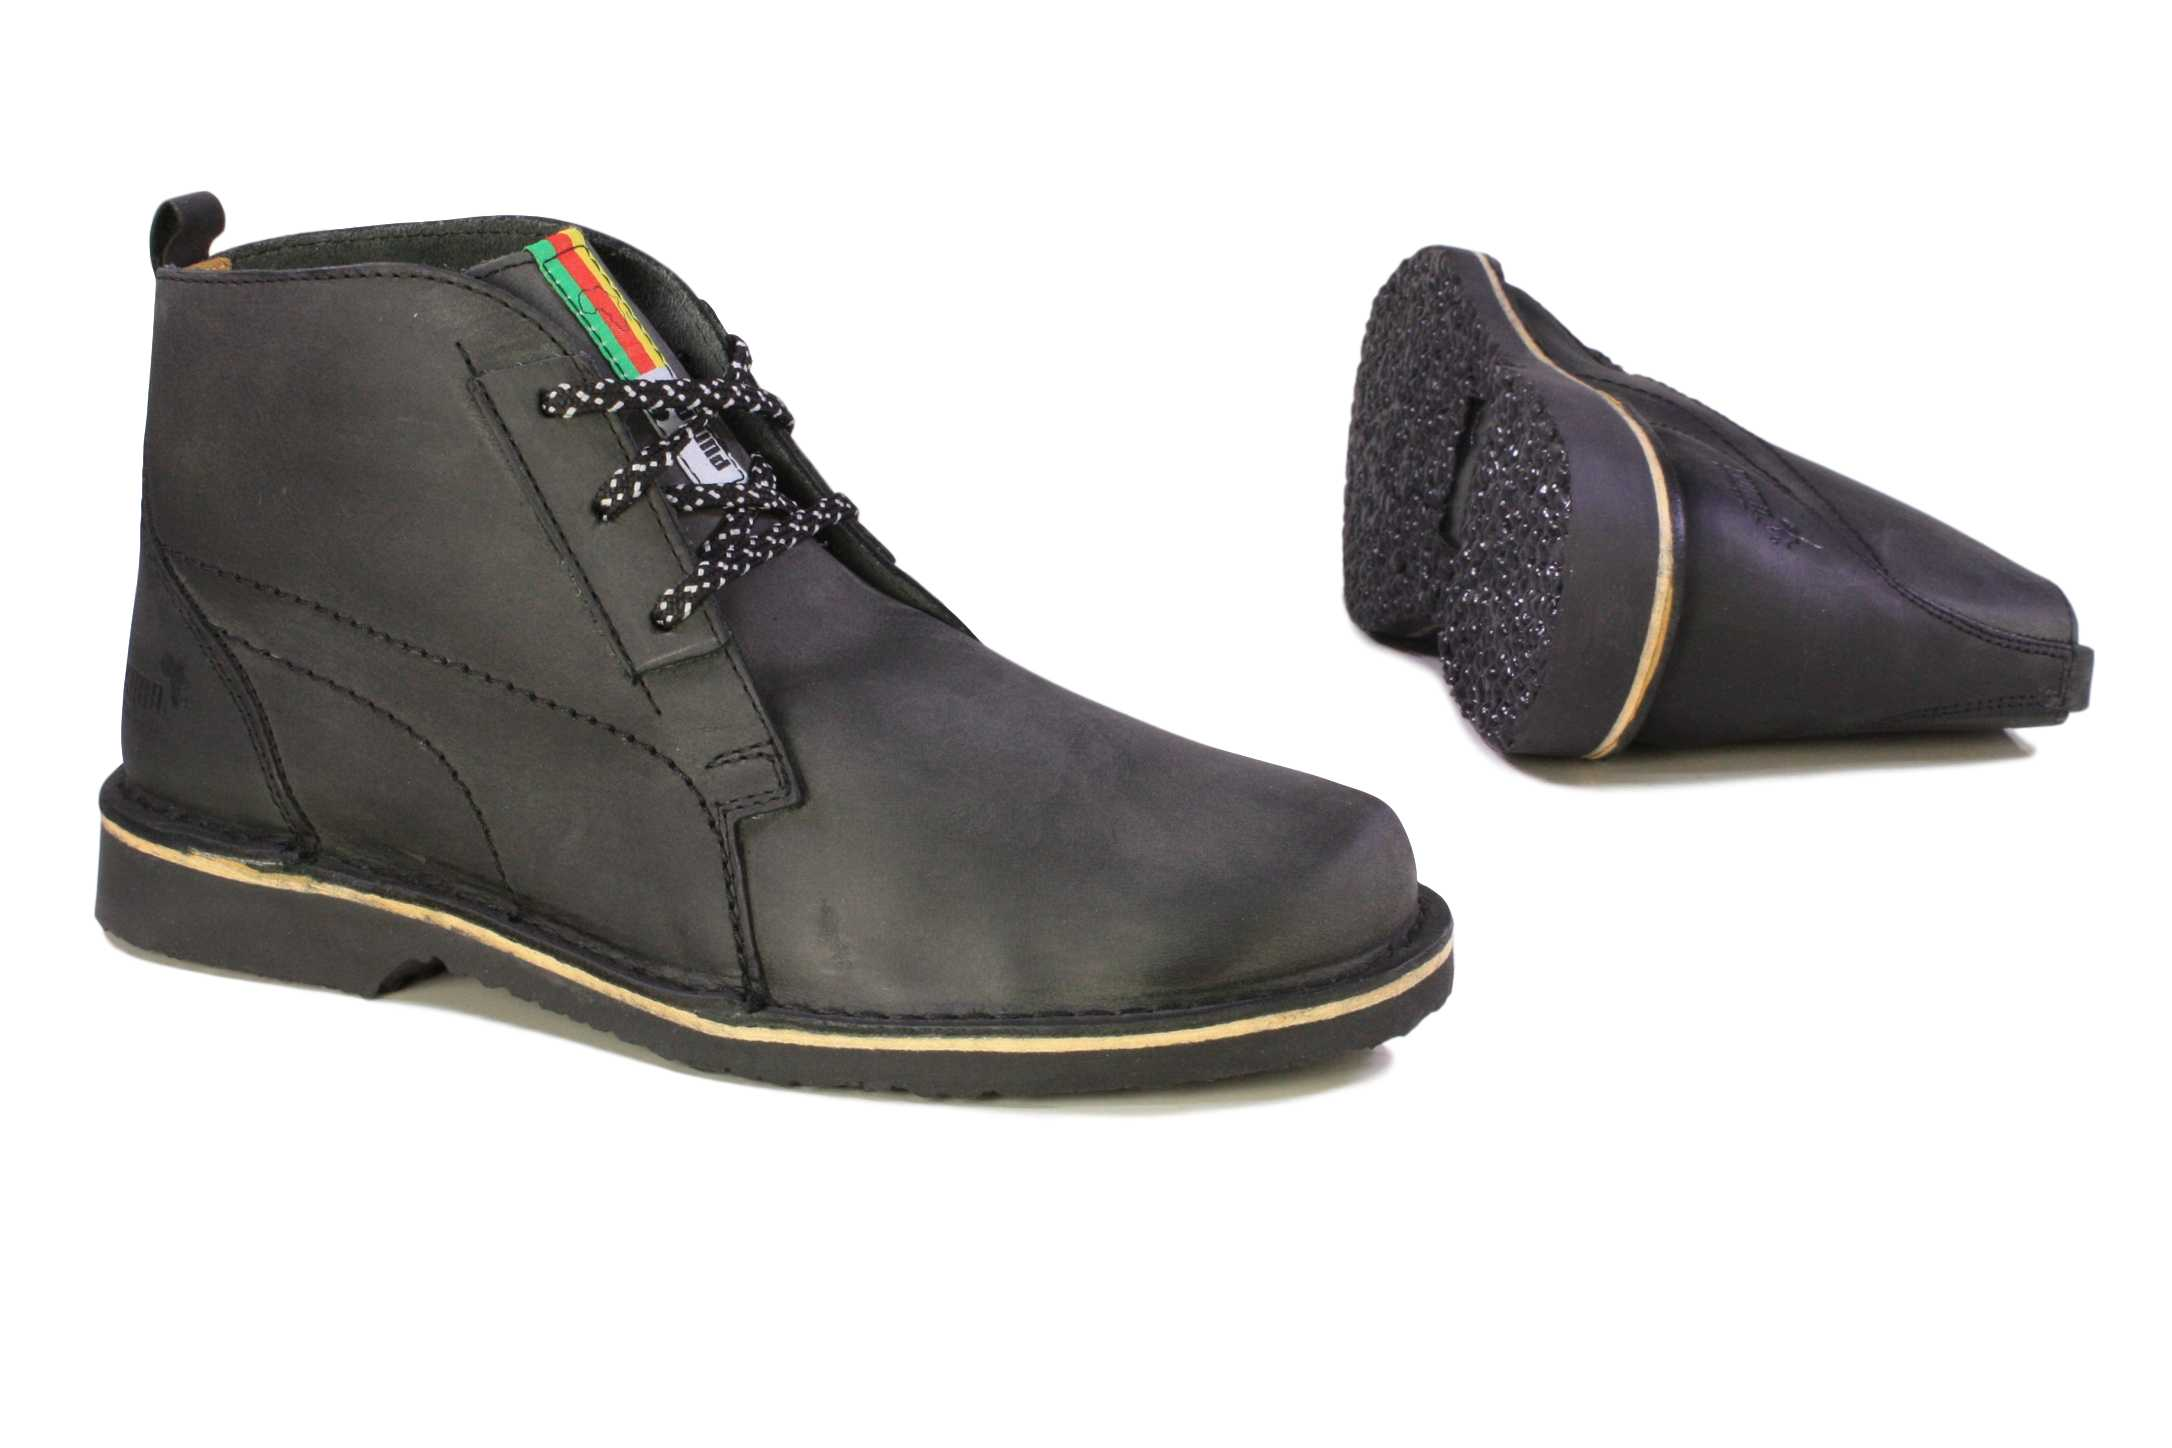 ff815b3fa0df Other Men s Shoes - PUMA - TERRAE MID AFRICA L 304288 18 (Size   8 ...